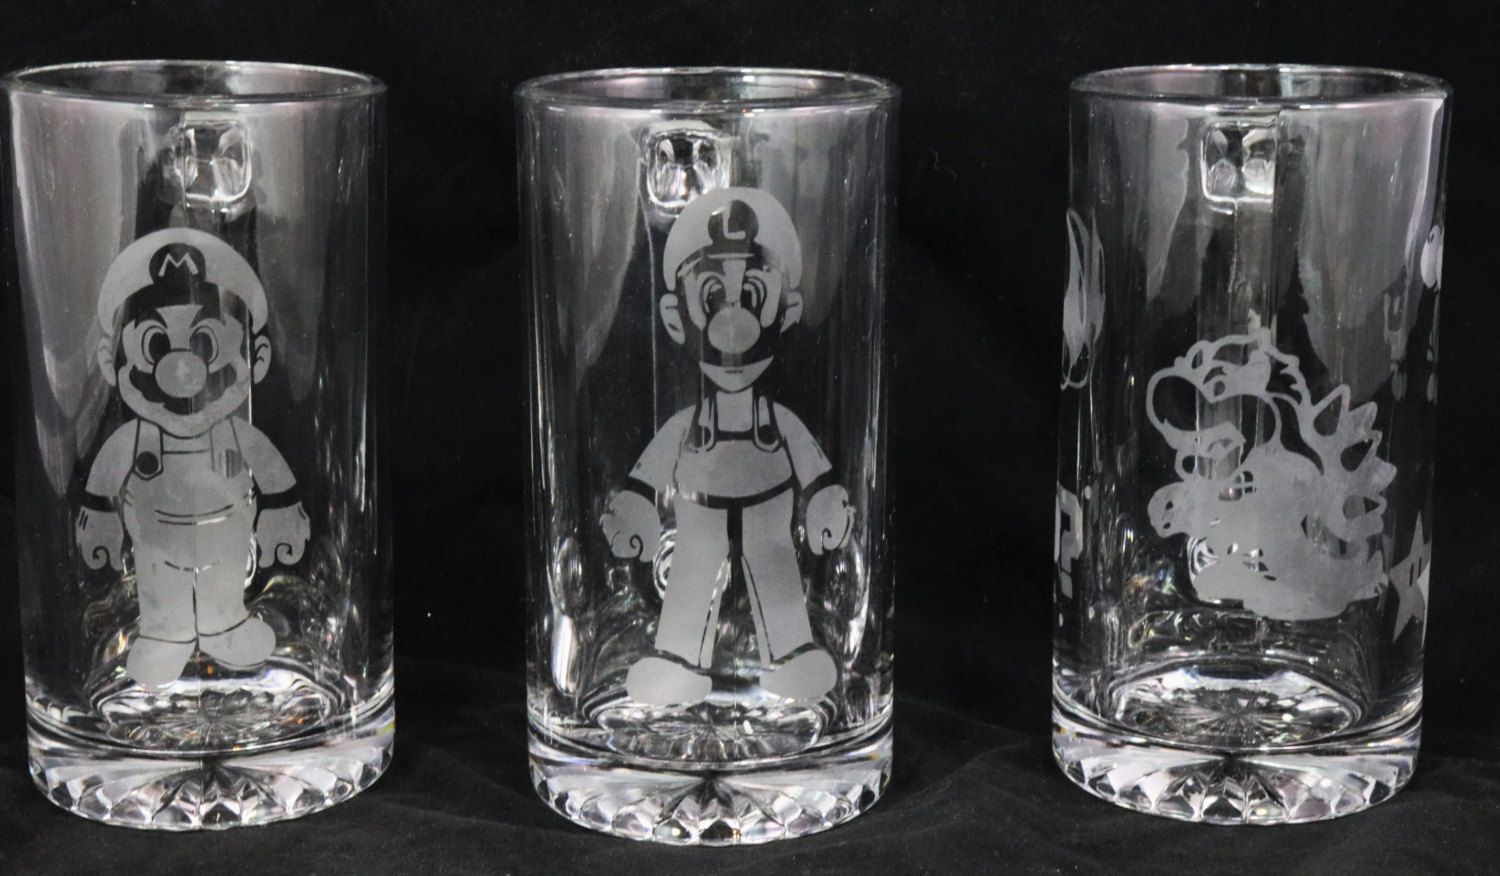 Super Mario Set of 3 Etched on Beer Mug by JeanandCompany85 on Etsy